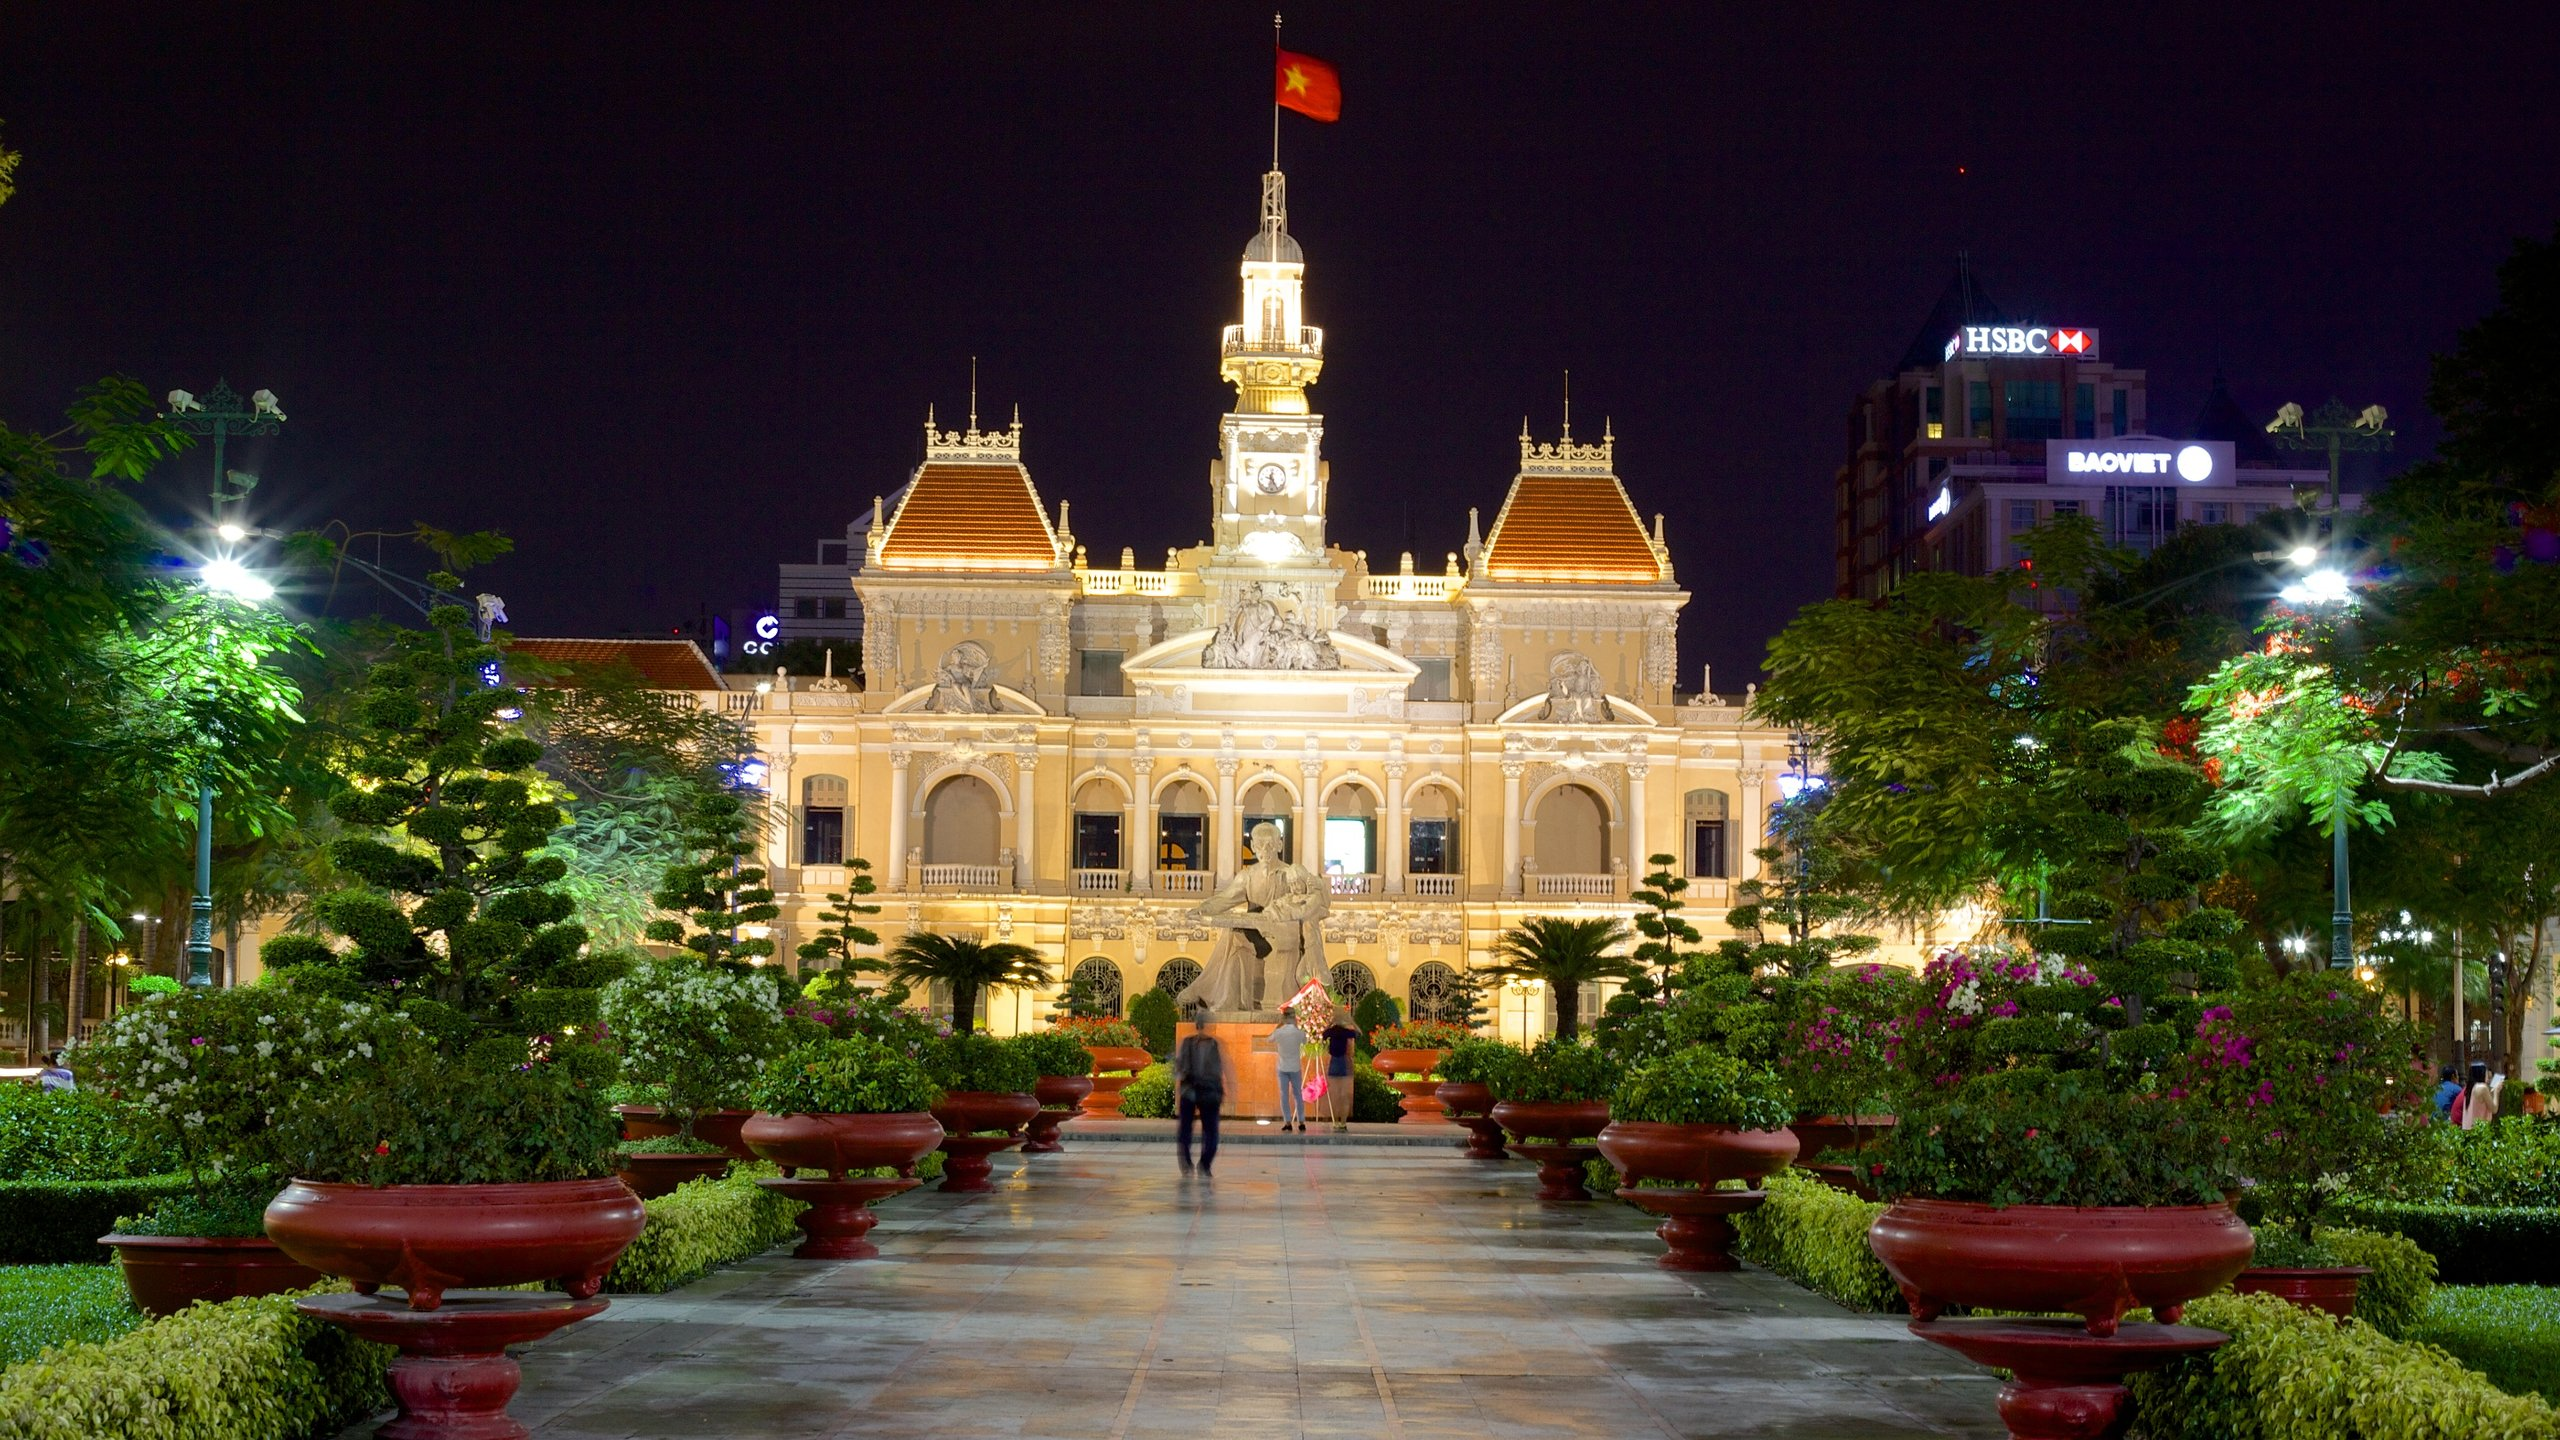 Where can i find the hottest vietnamese girls in ho chi minh city, vietnam